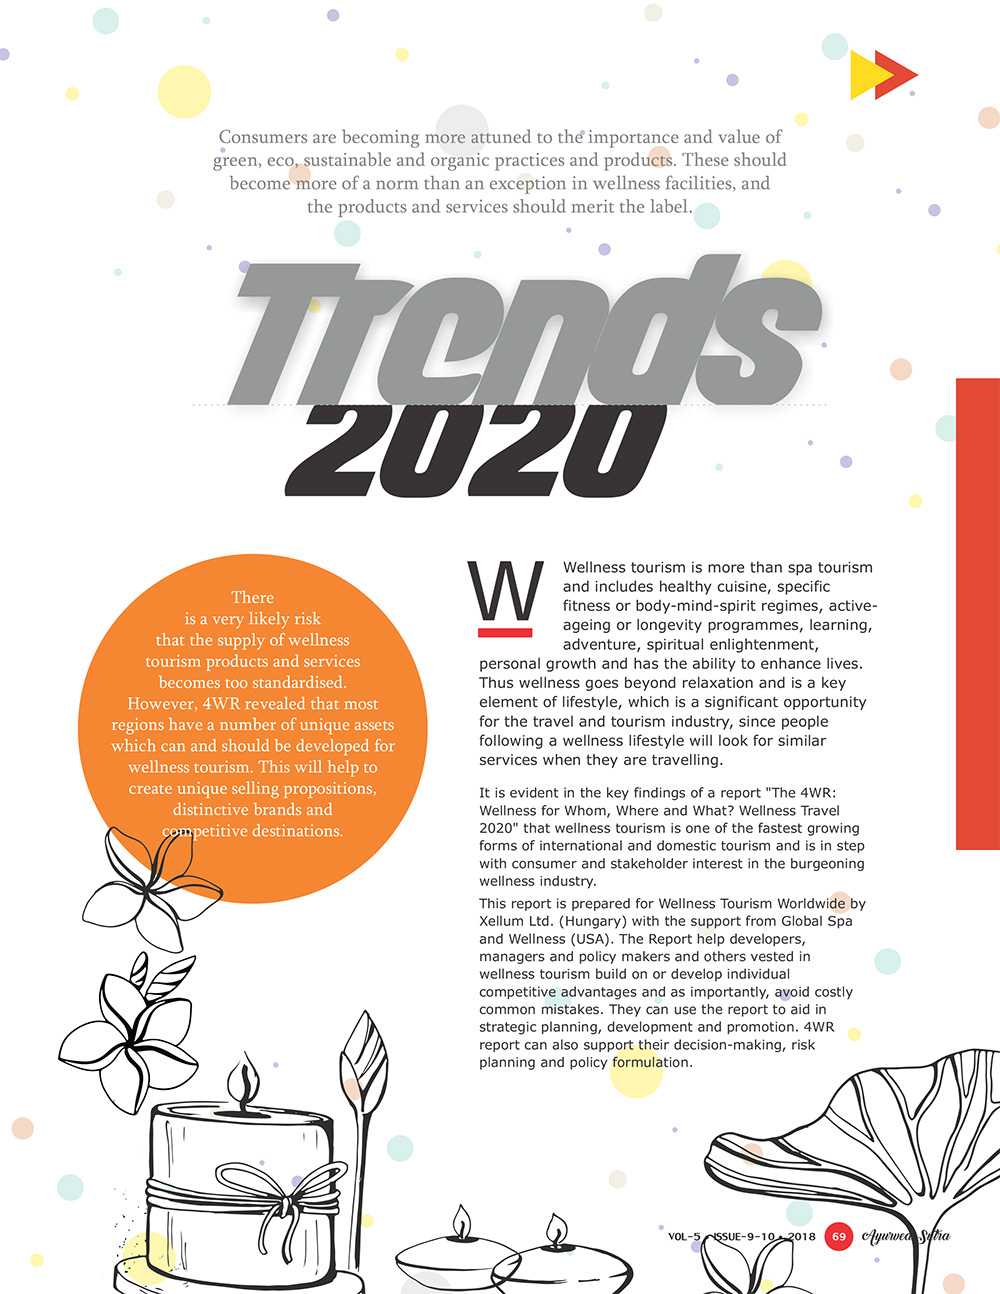 Ayurvedsutra Vol 05 issue 09 10 71 1 - Trends 2020